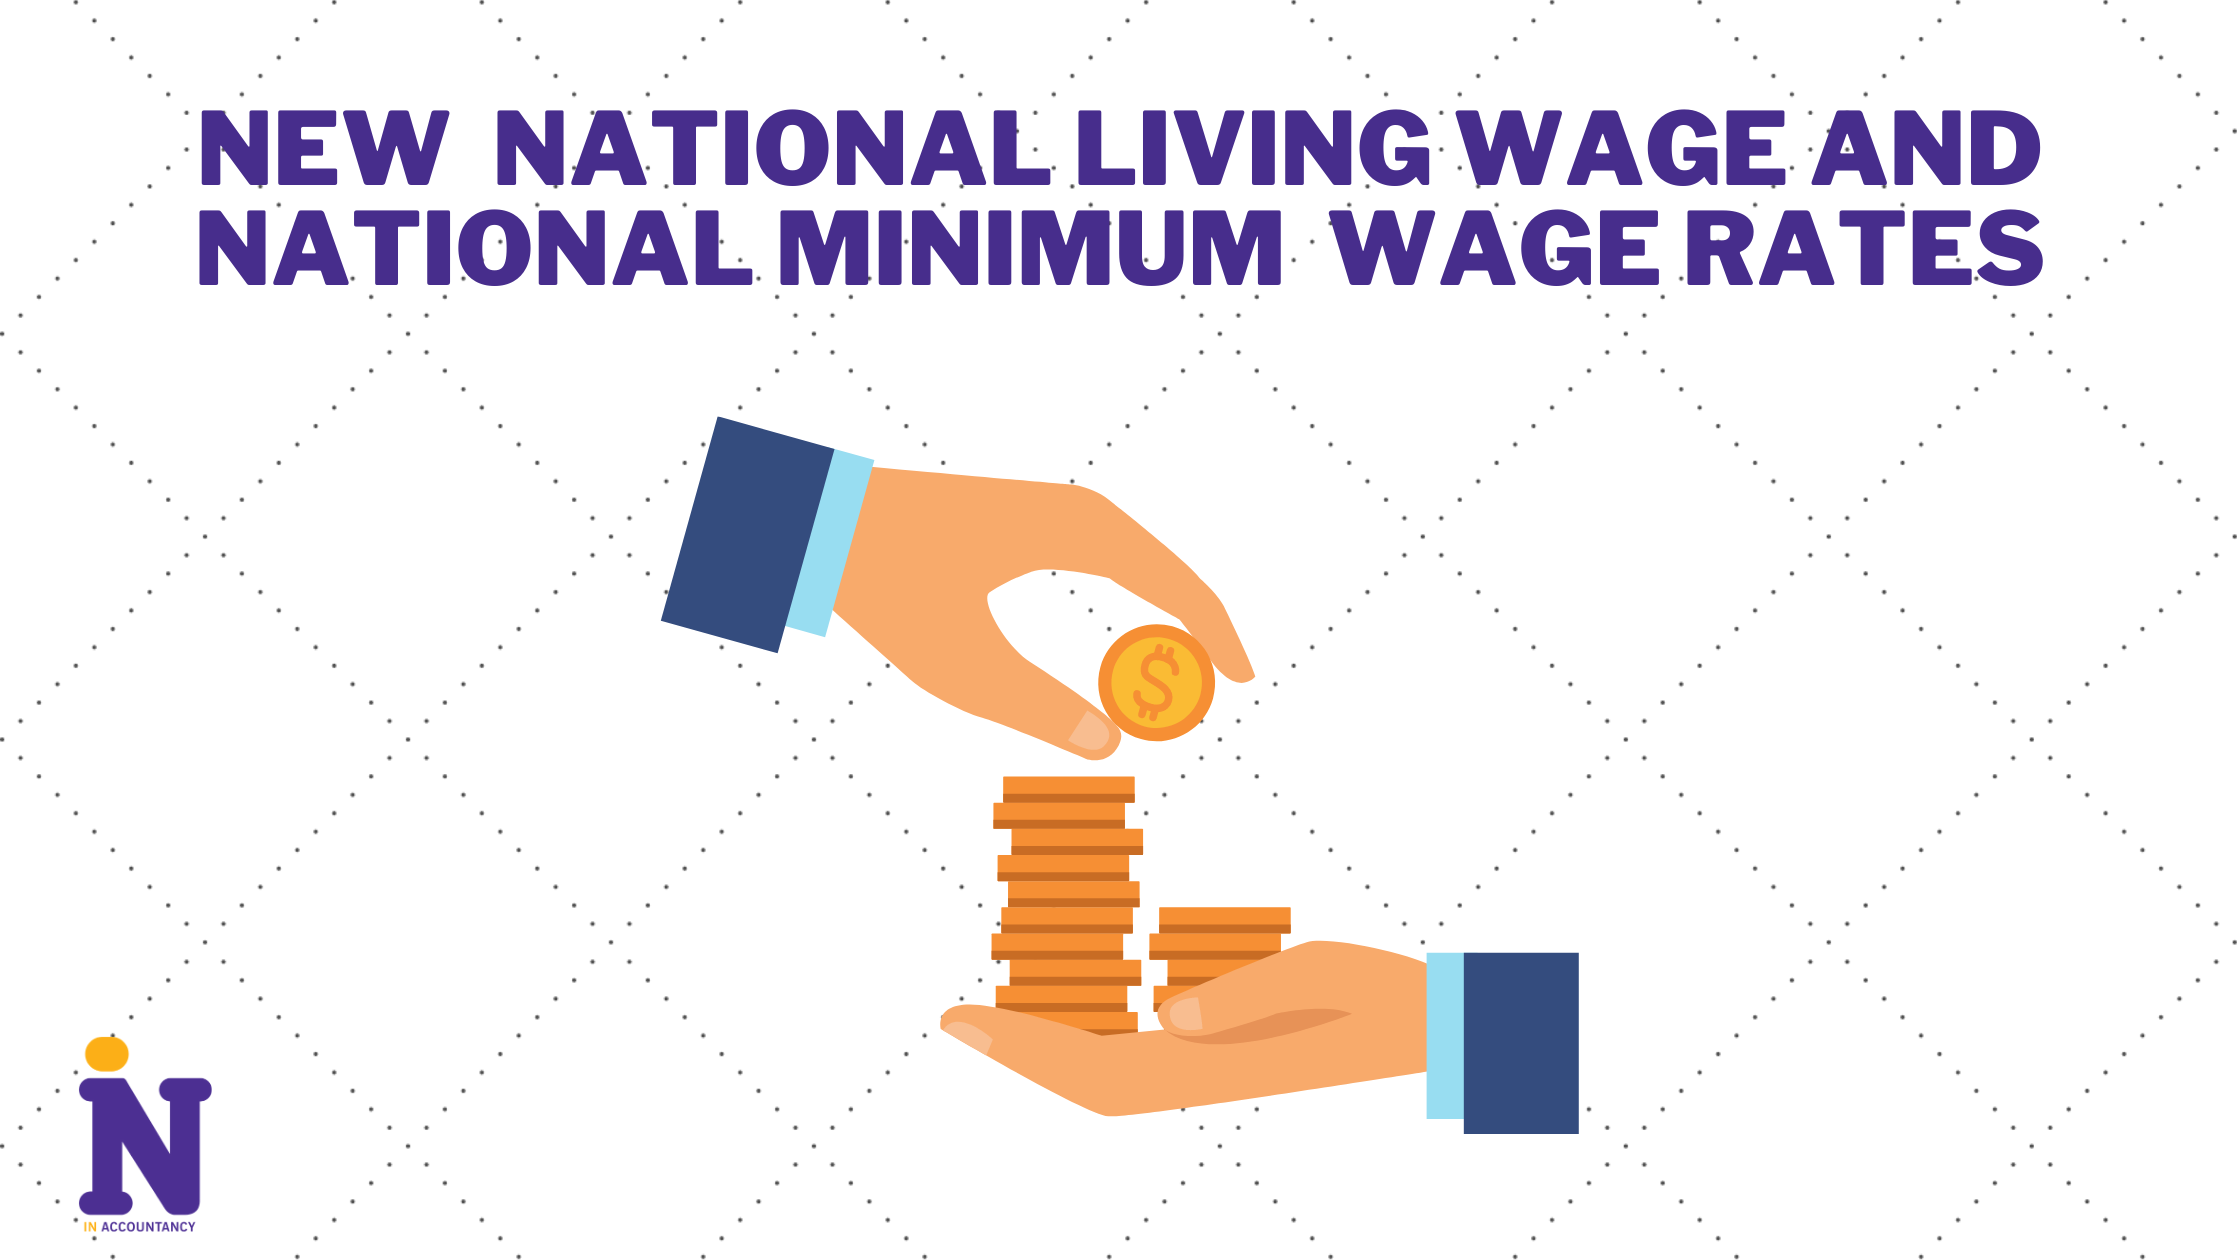 New National Living Wage and National Minimum Wage Rates